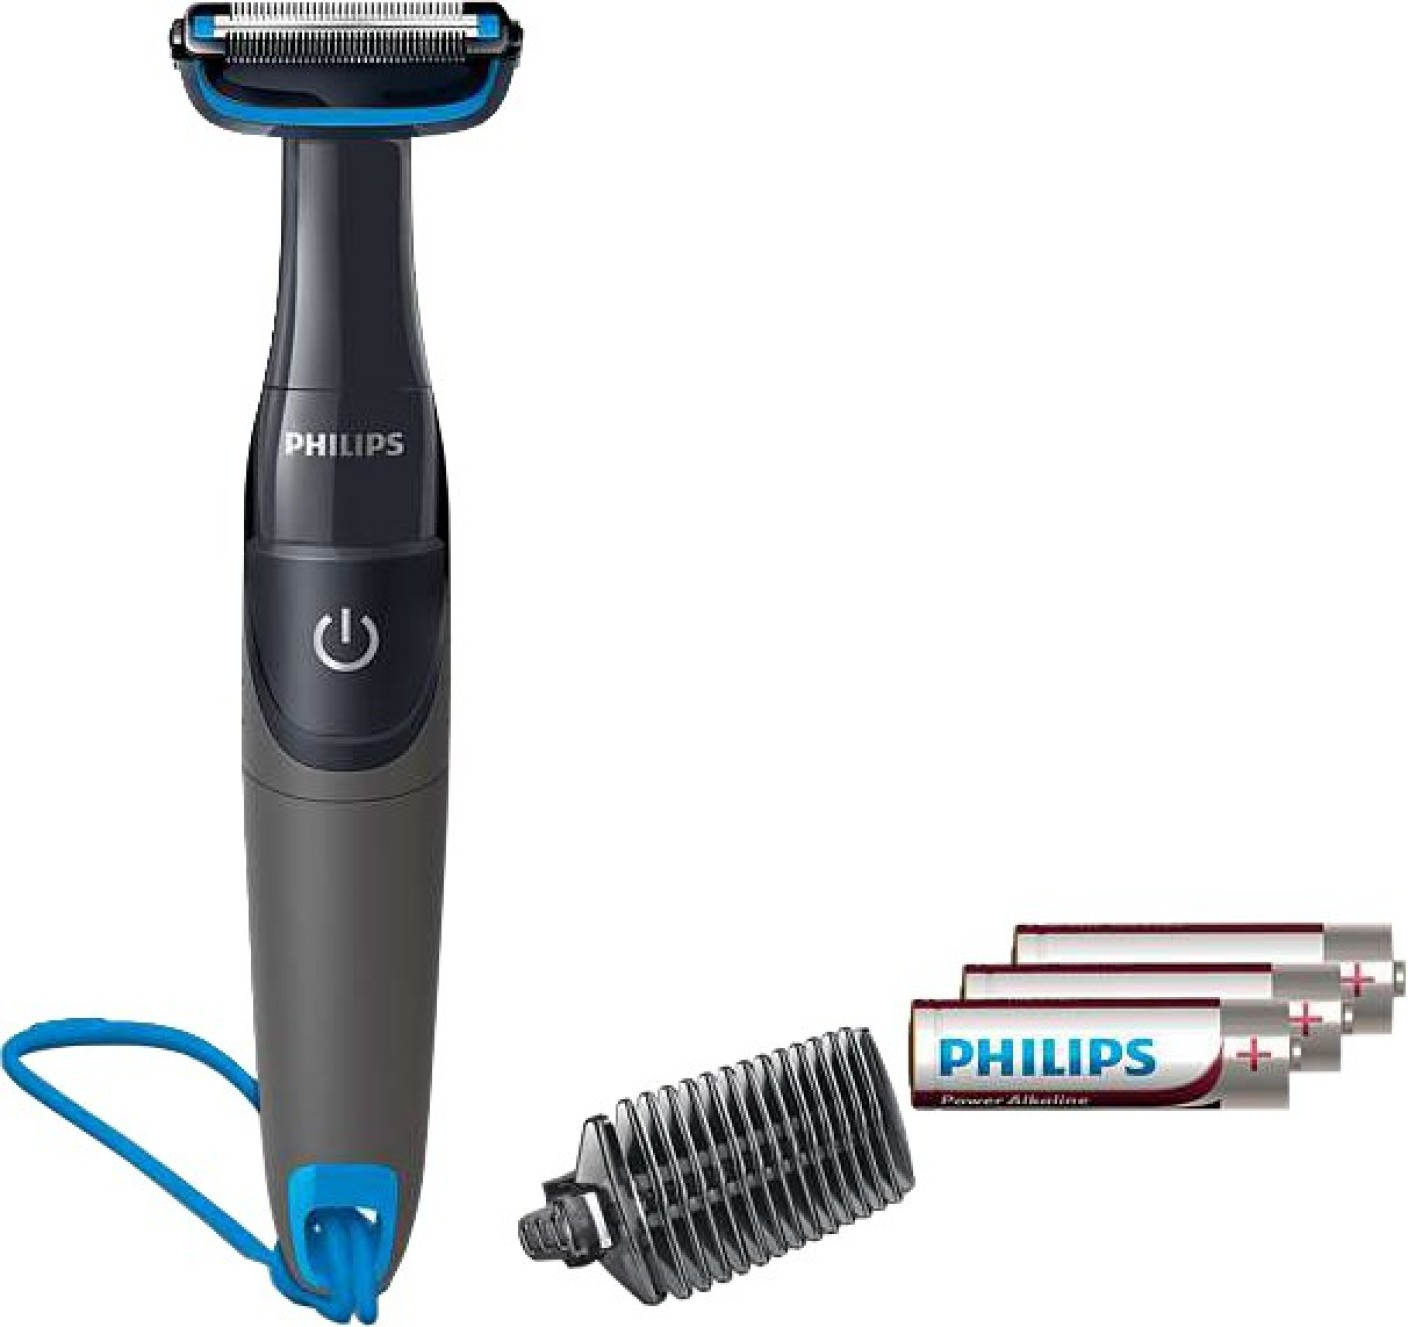 philips bg1025 15 shaver for men philips. Black Bedroom Furniture Sets. Home Design Ideas